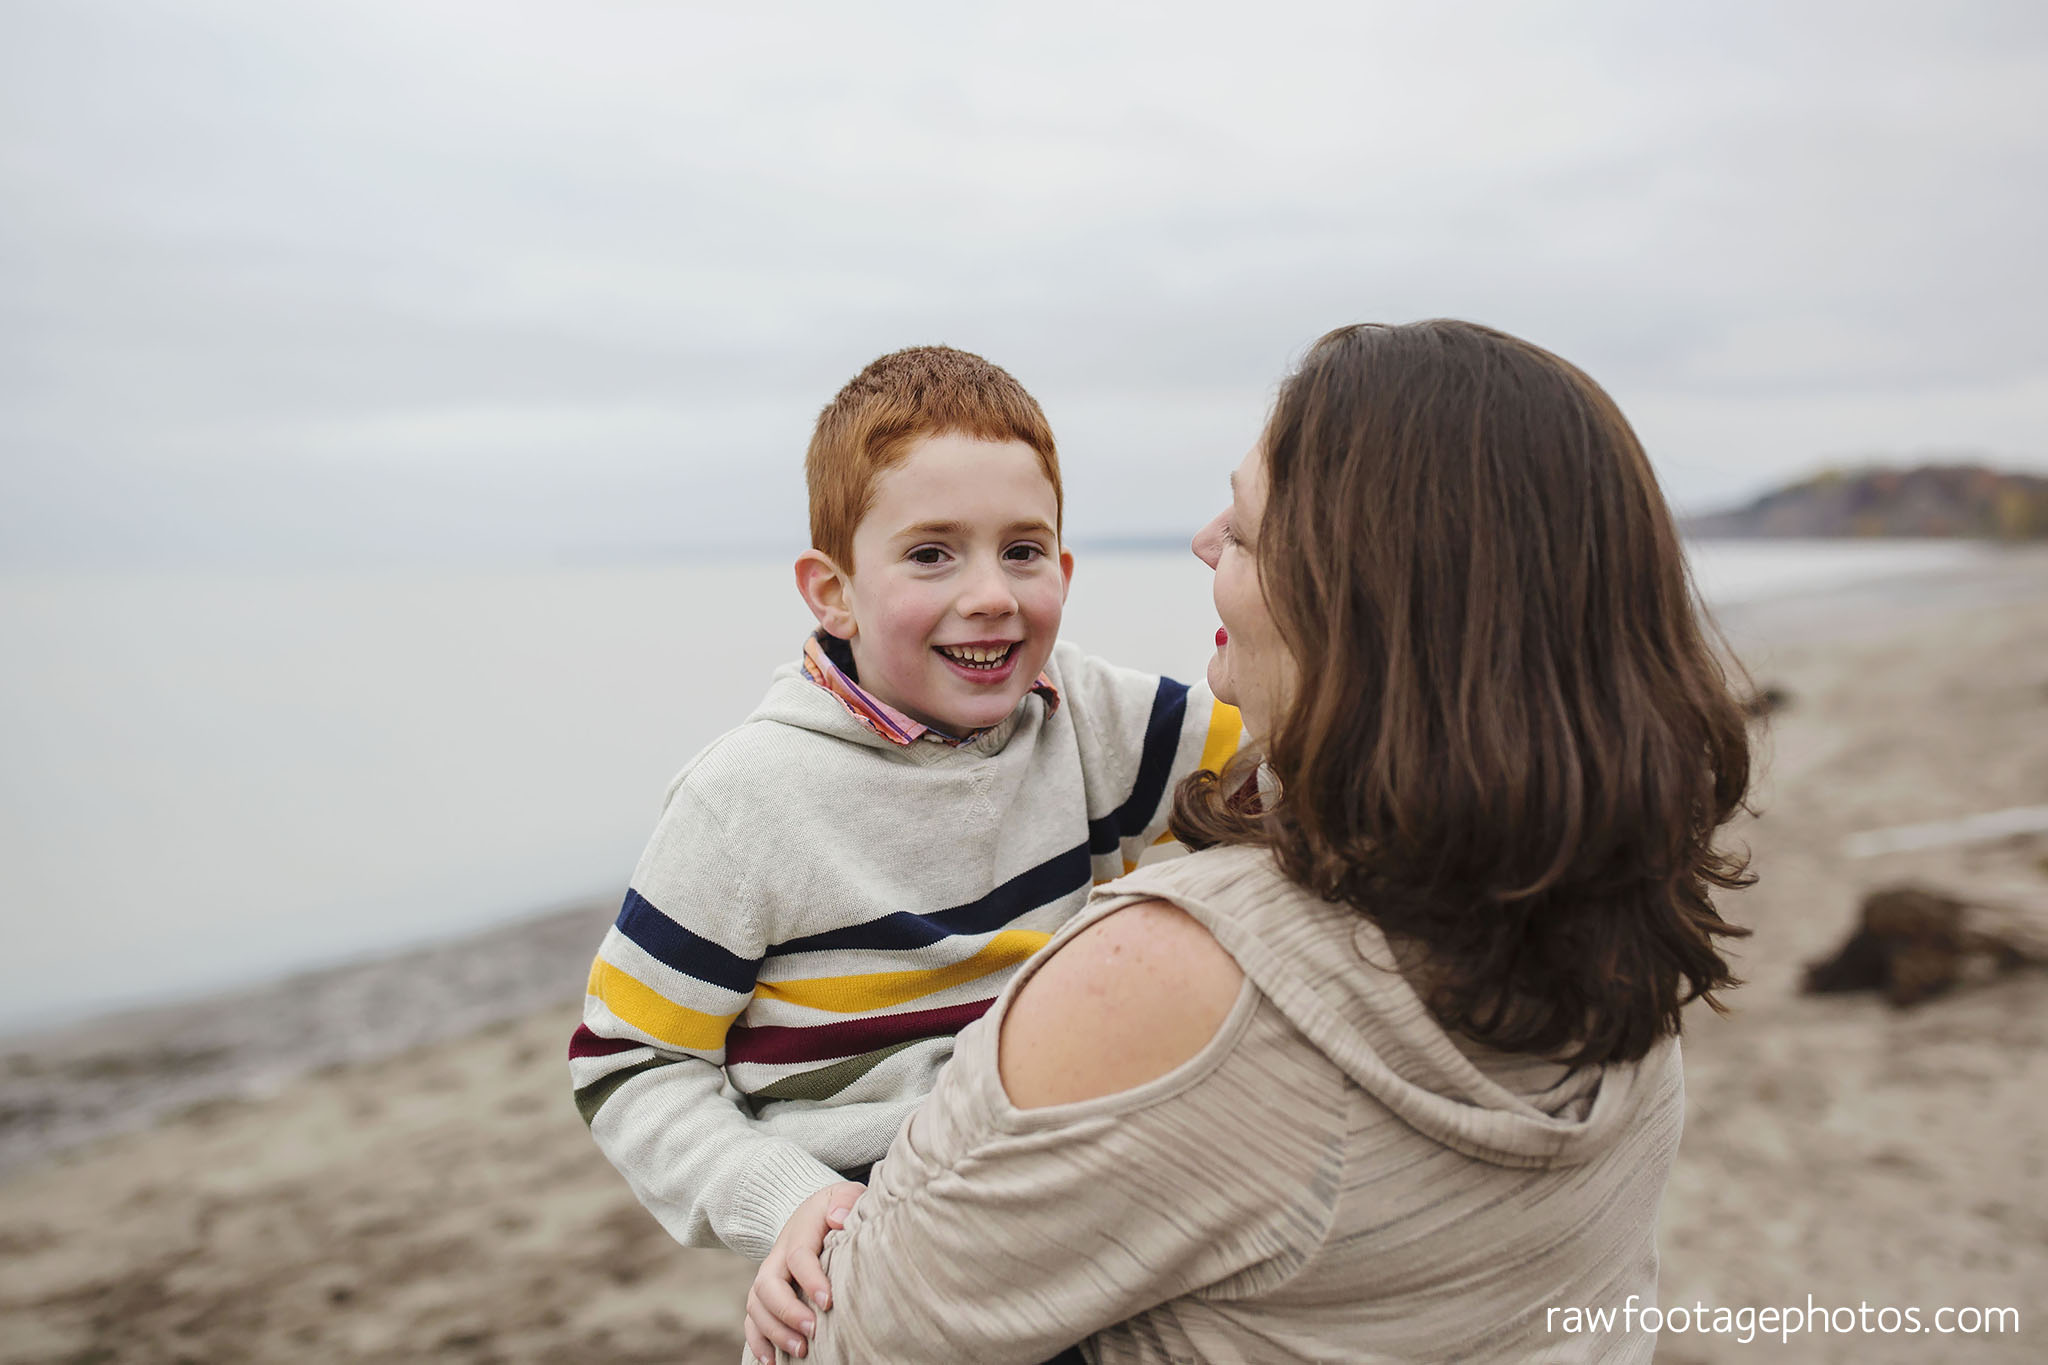 london_ontario_family_photographer-port_stanley_photography-raw_footage_photography-family_photos-beach_photos-fall_family_photos-lifestyle_family_photography-candid_photographer027.jpg